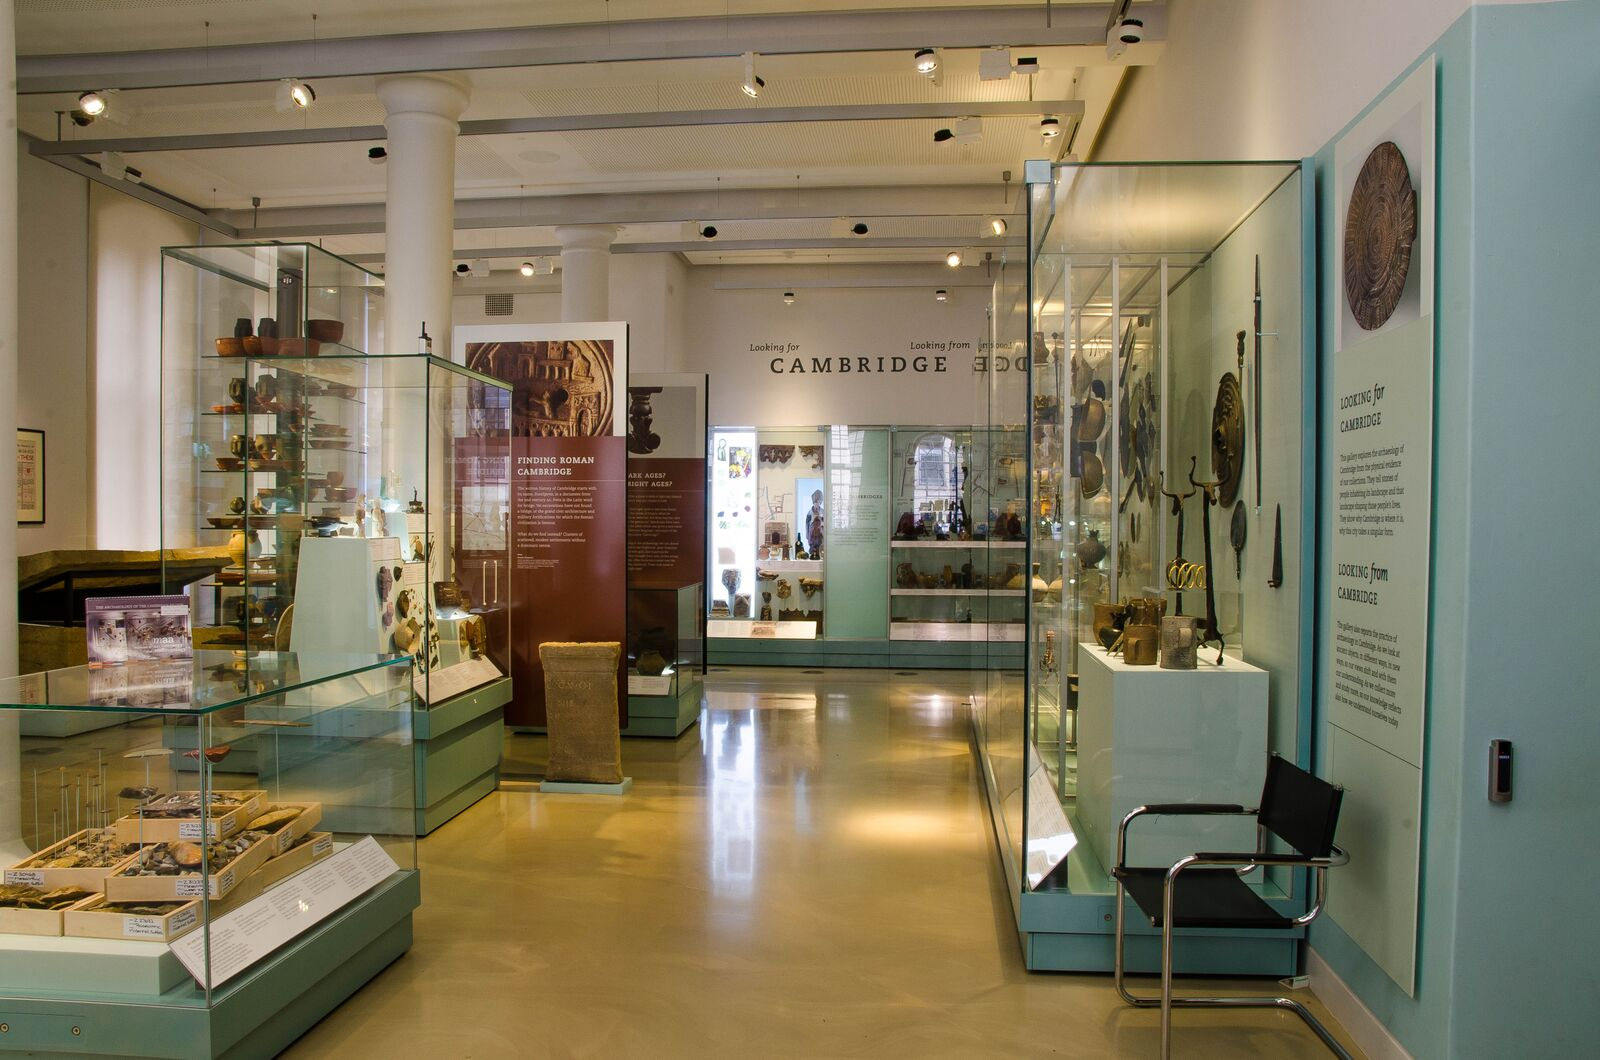 A view of the Clarke Gallery